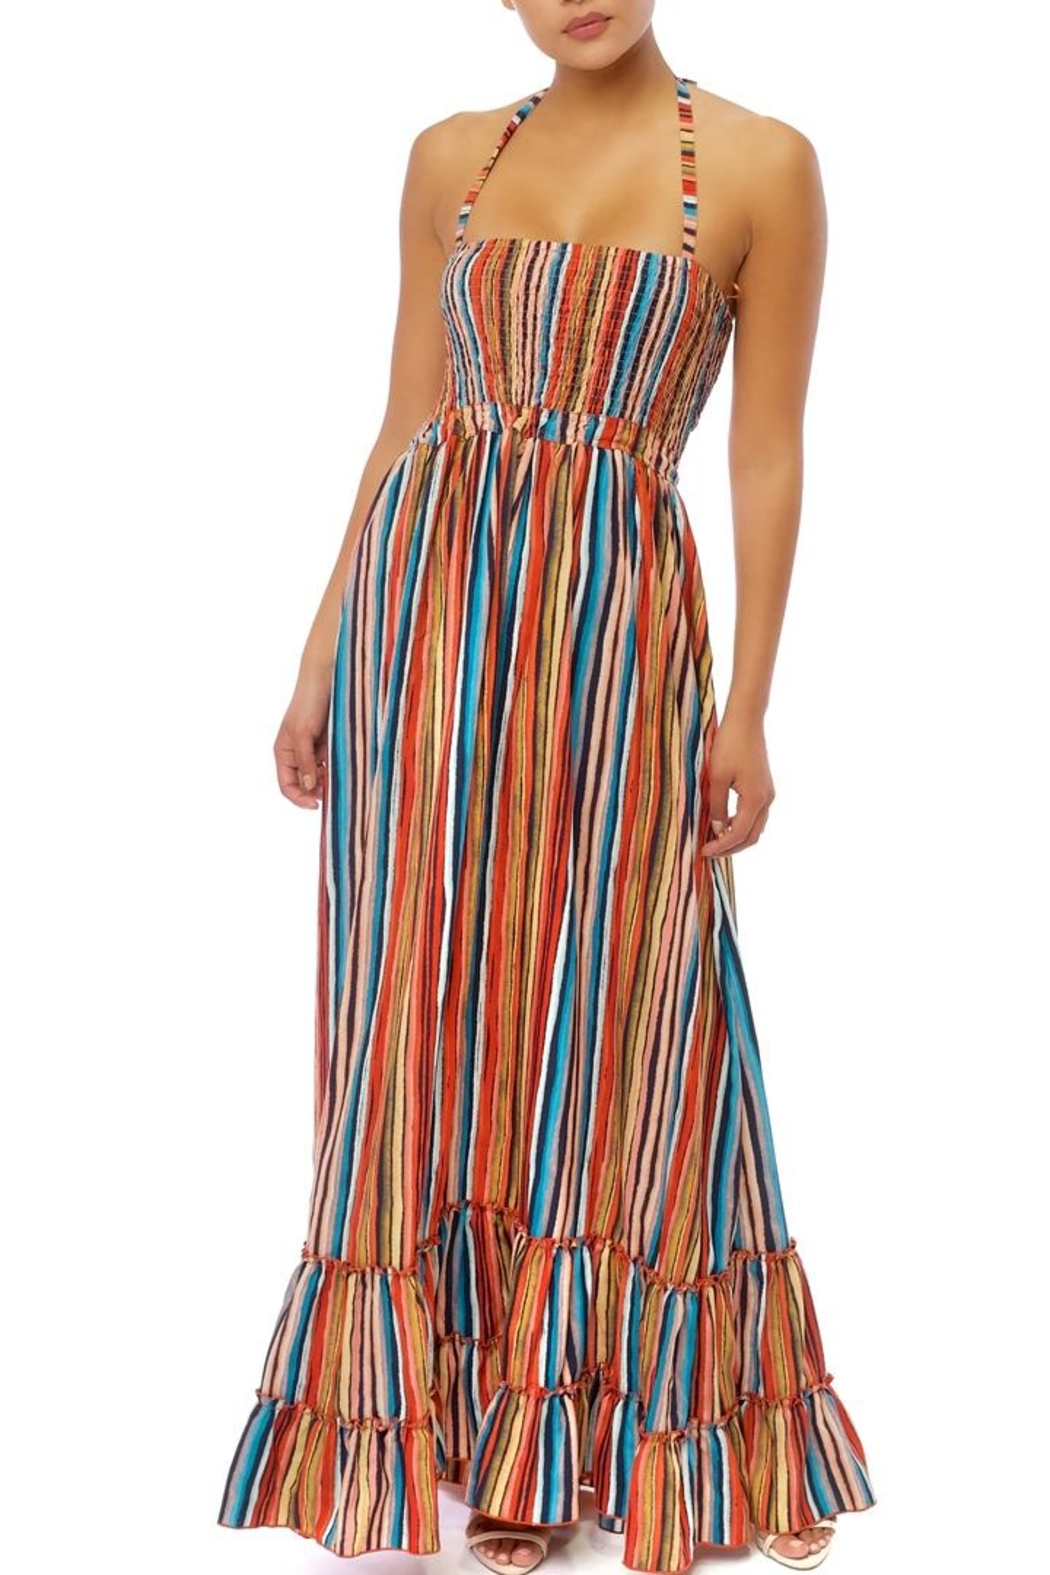 luxxel Stripe Maxi Dress - Main Image